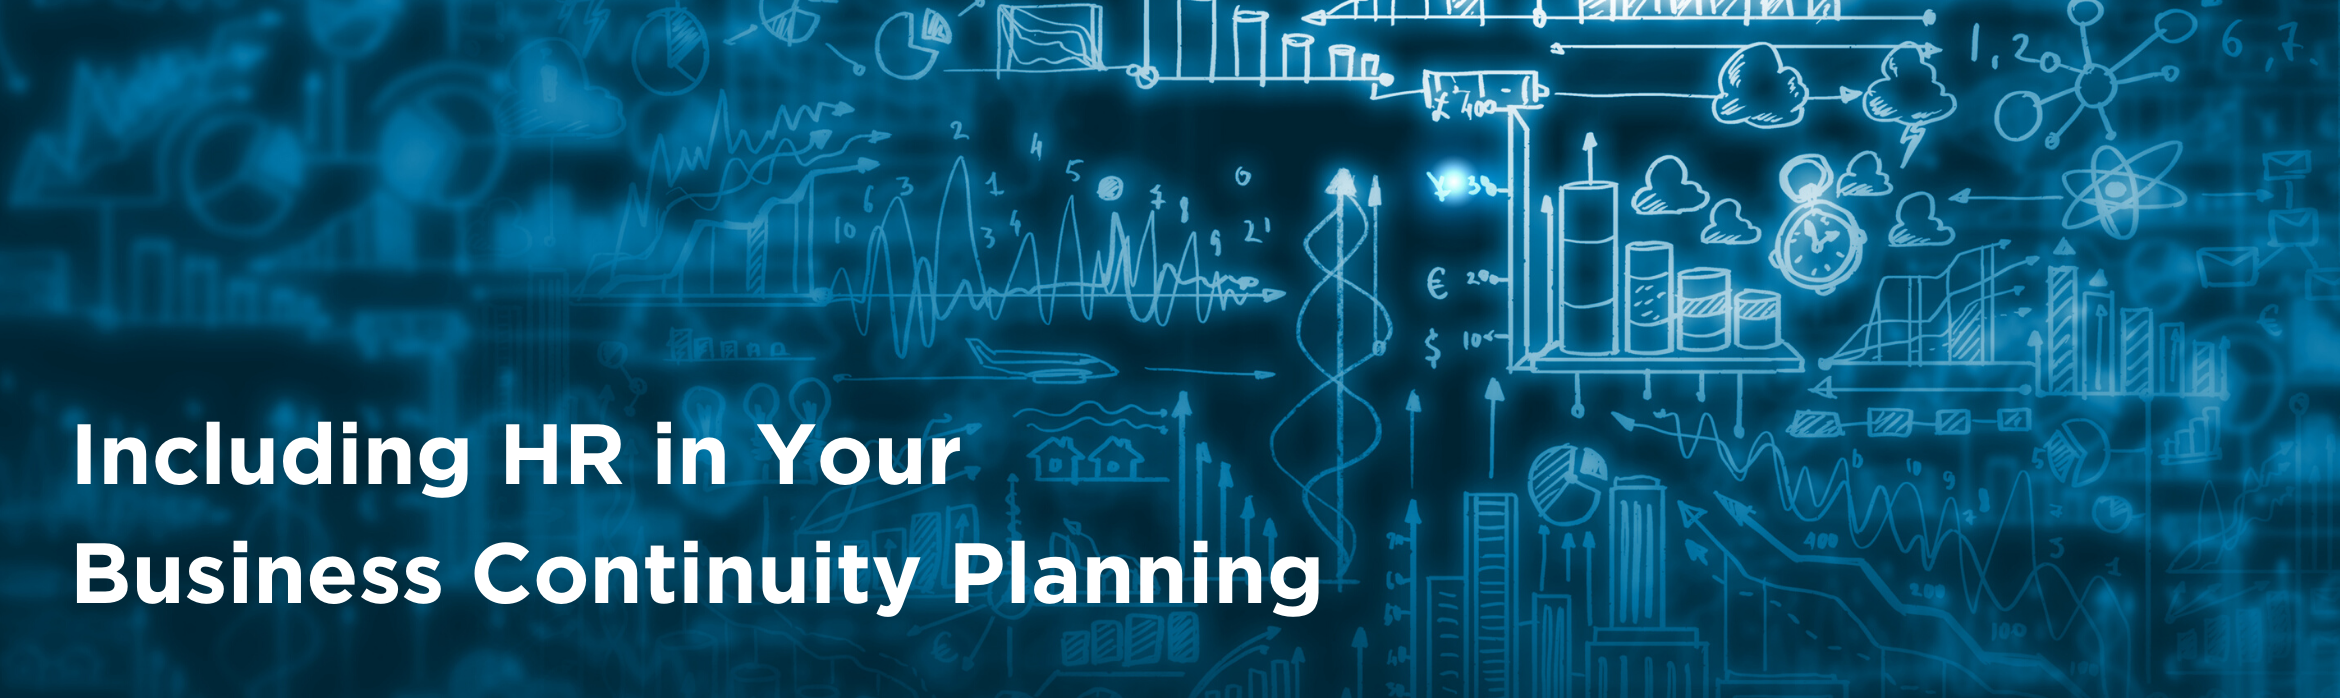 Including HR in Your Business Continuity Planning